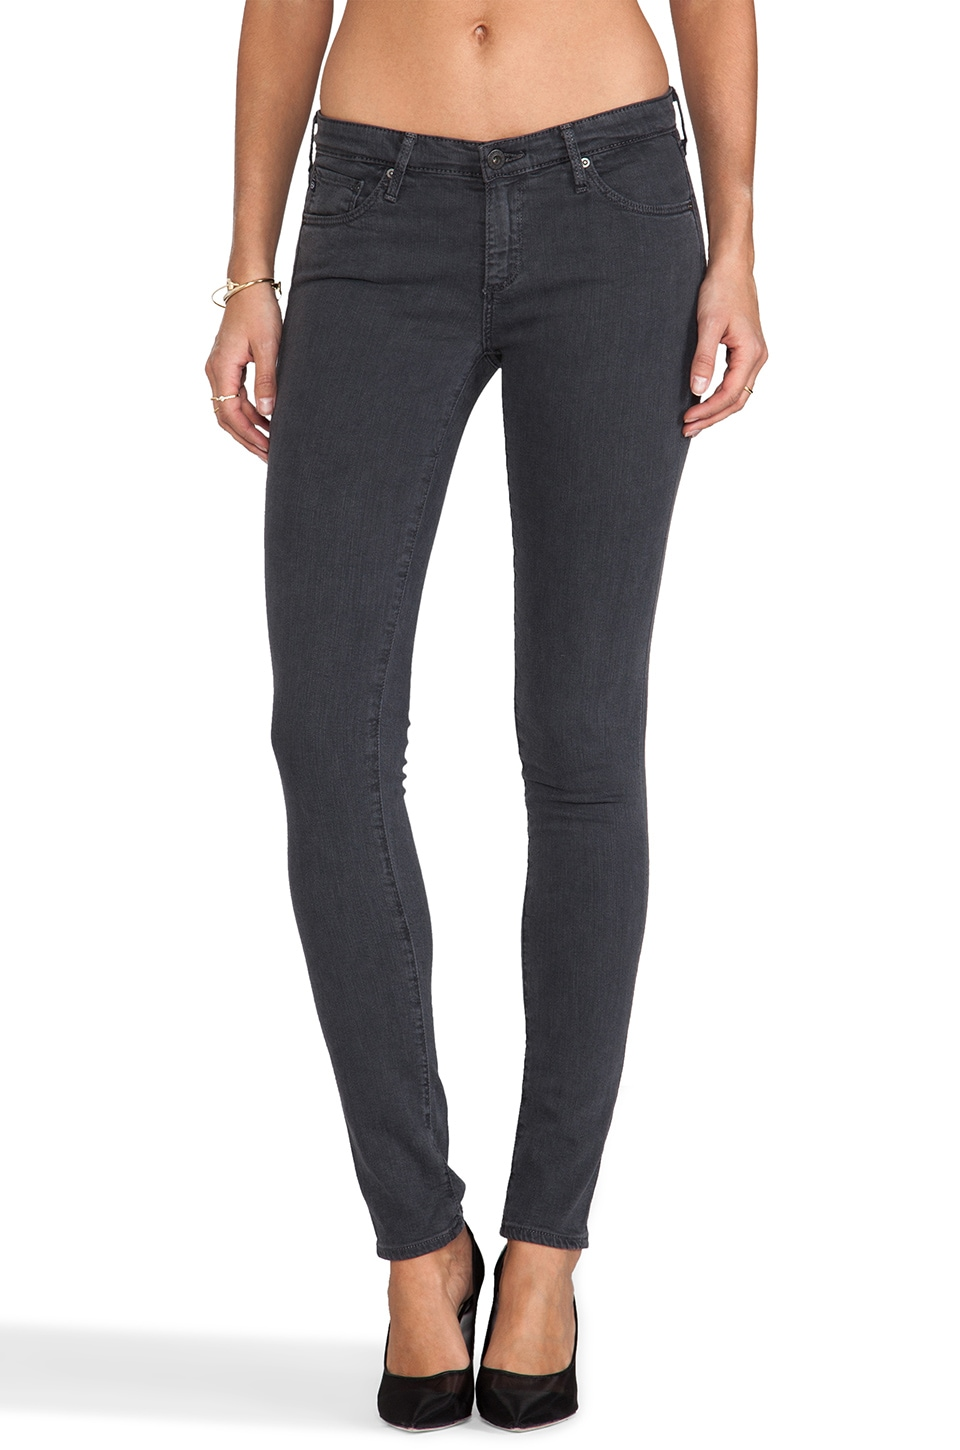 AG Adriano Goldschmied The Legging Grey in Sulfur Dark Charcoal